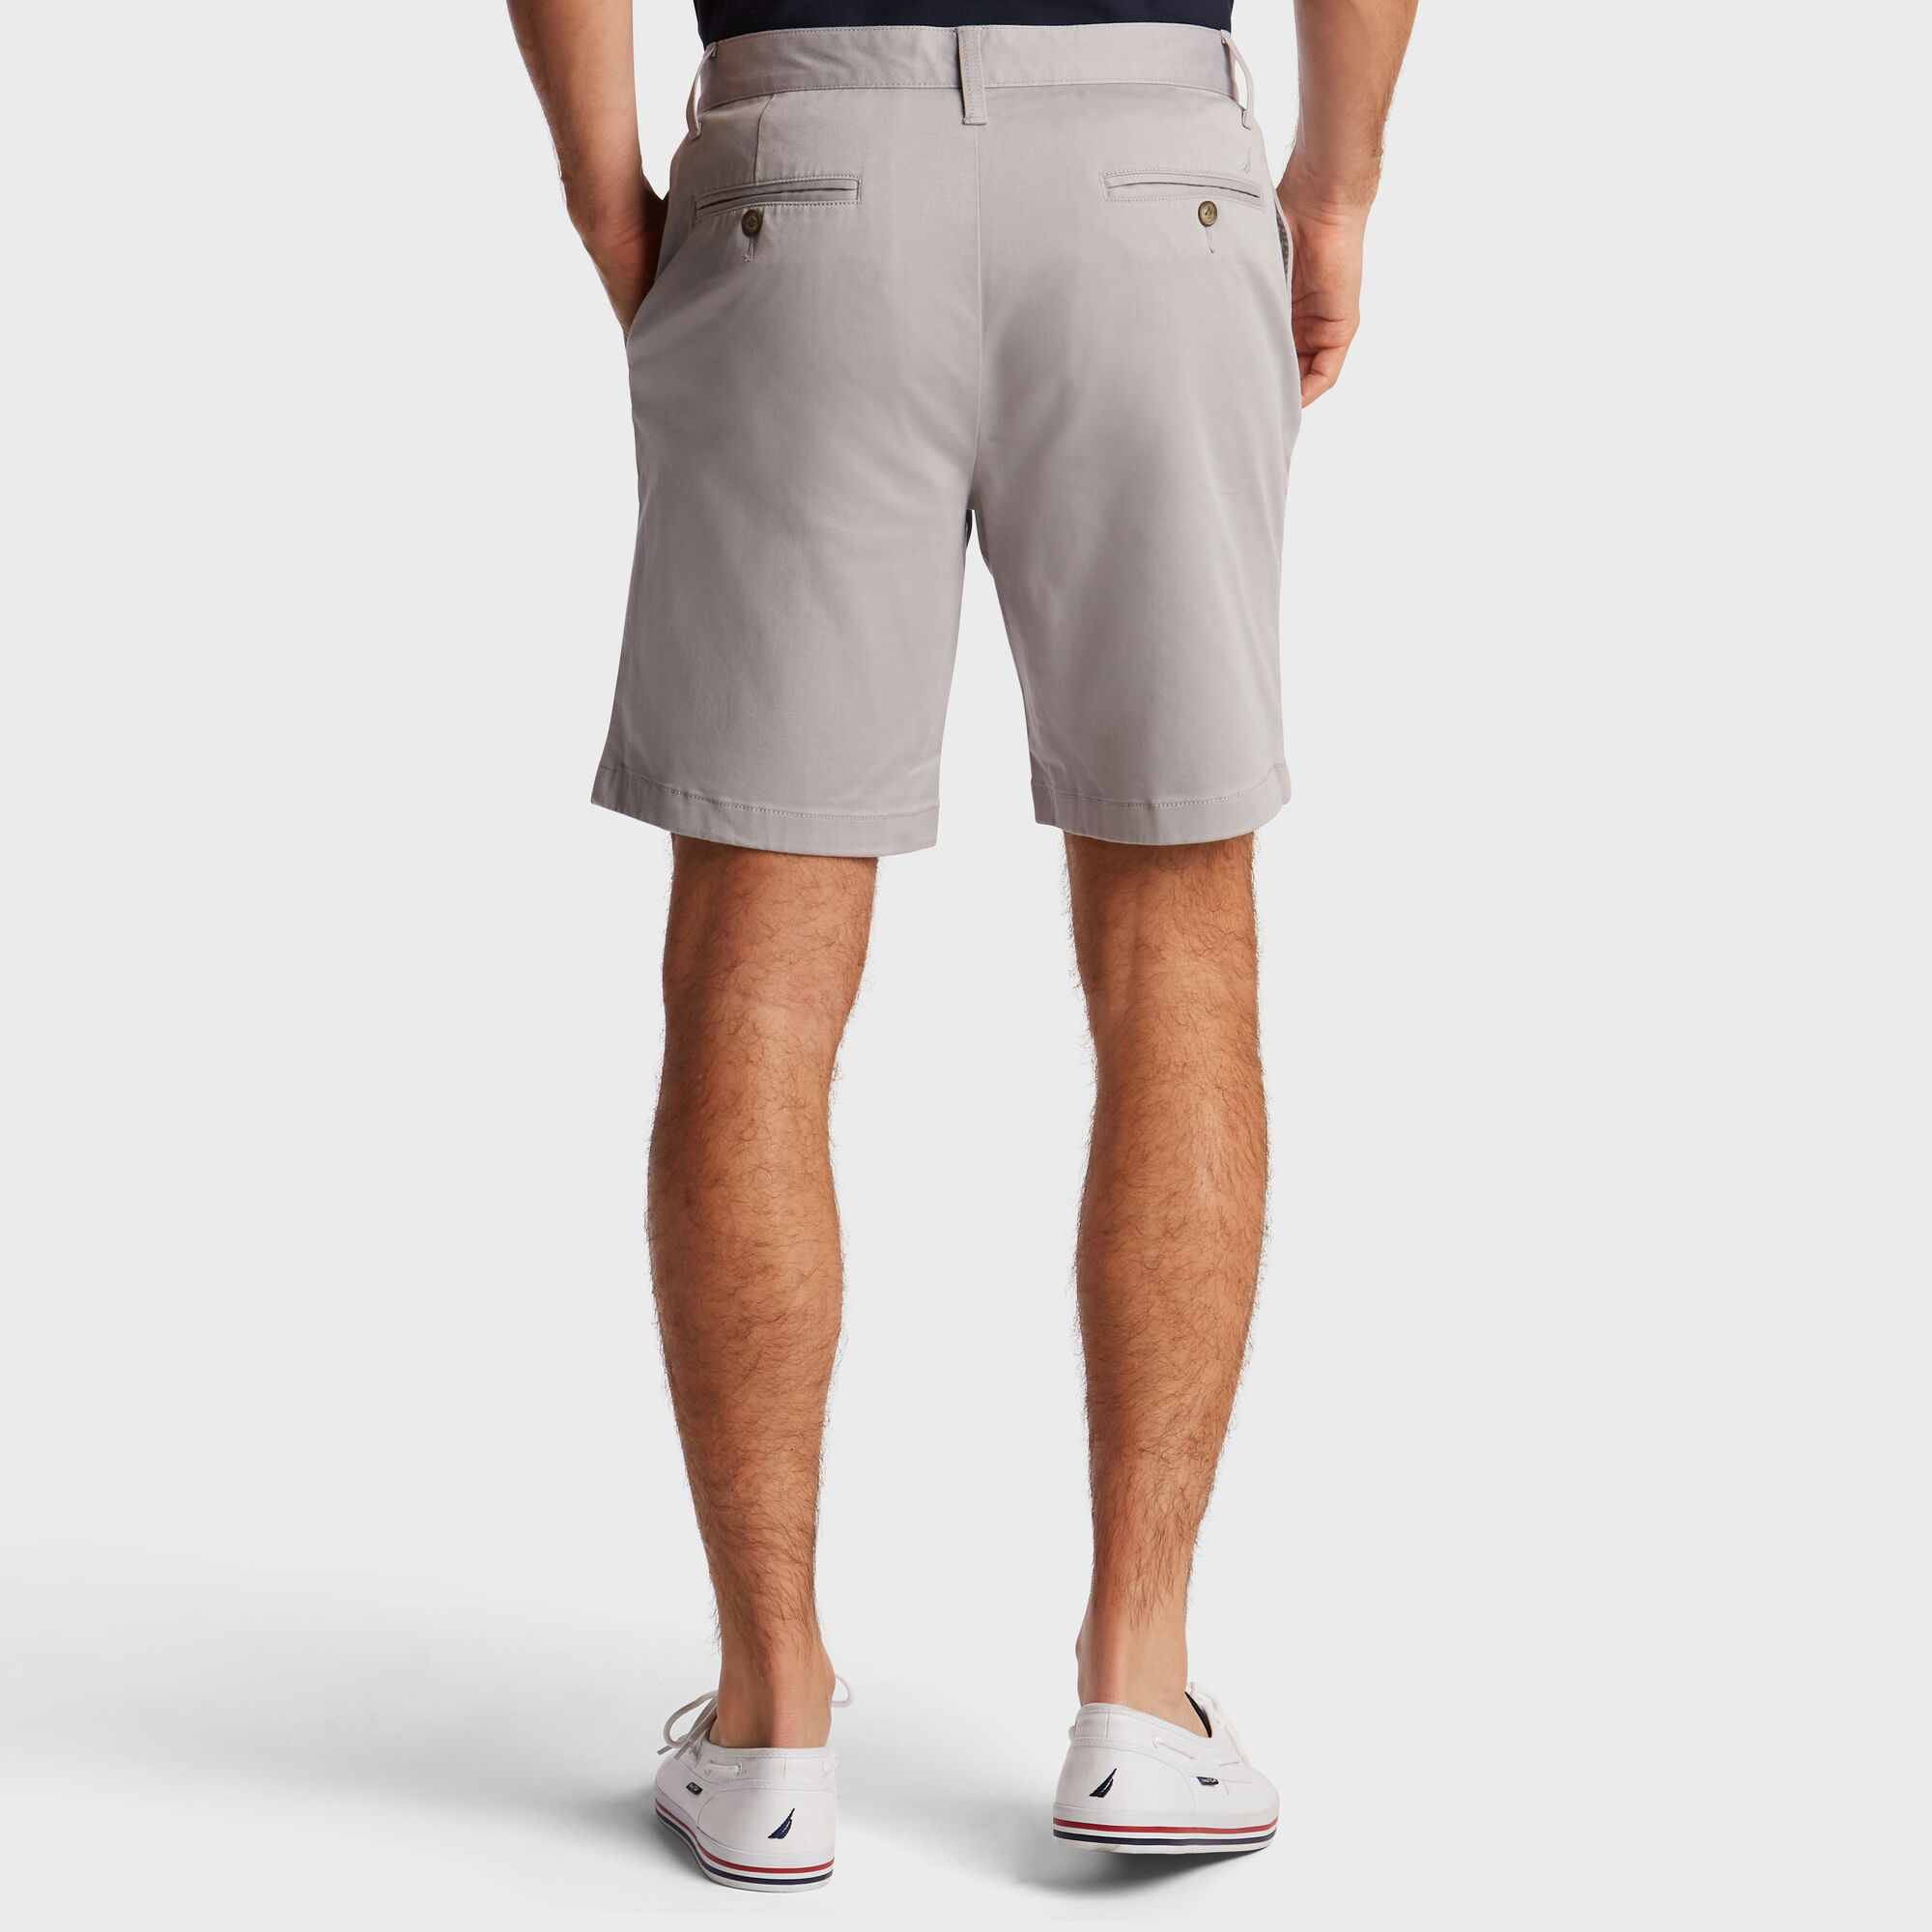 Nautica-Mens-8-5-034-Classic-Fit-Deck-Short-With-Stretch thumbnail 6